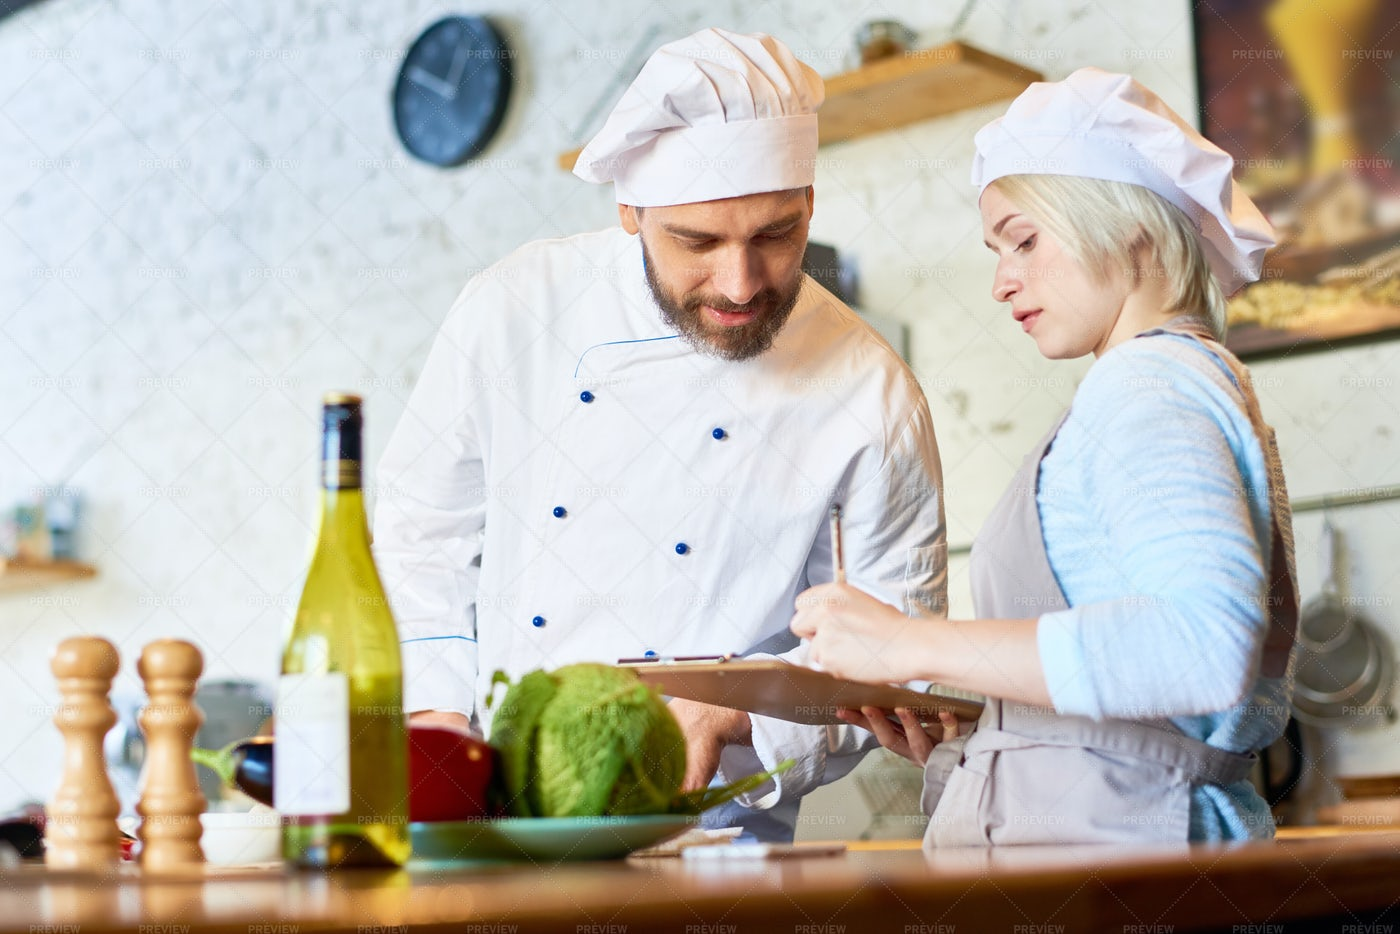 Chef Working In Cafe Kitchen: Stock Photos